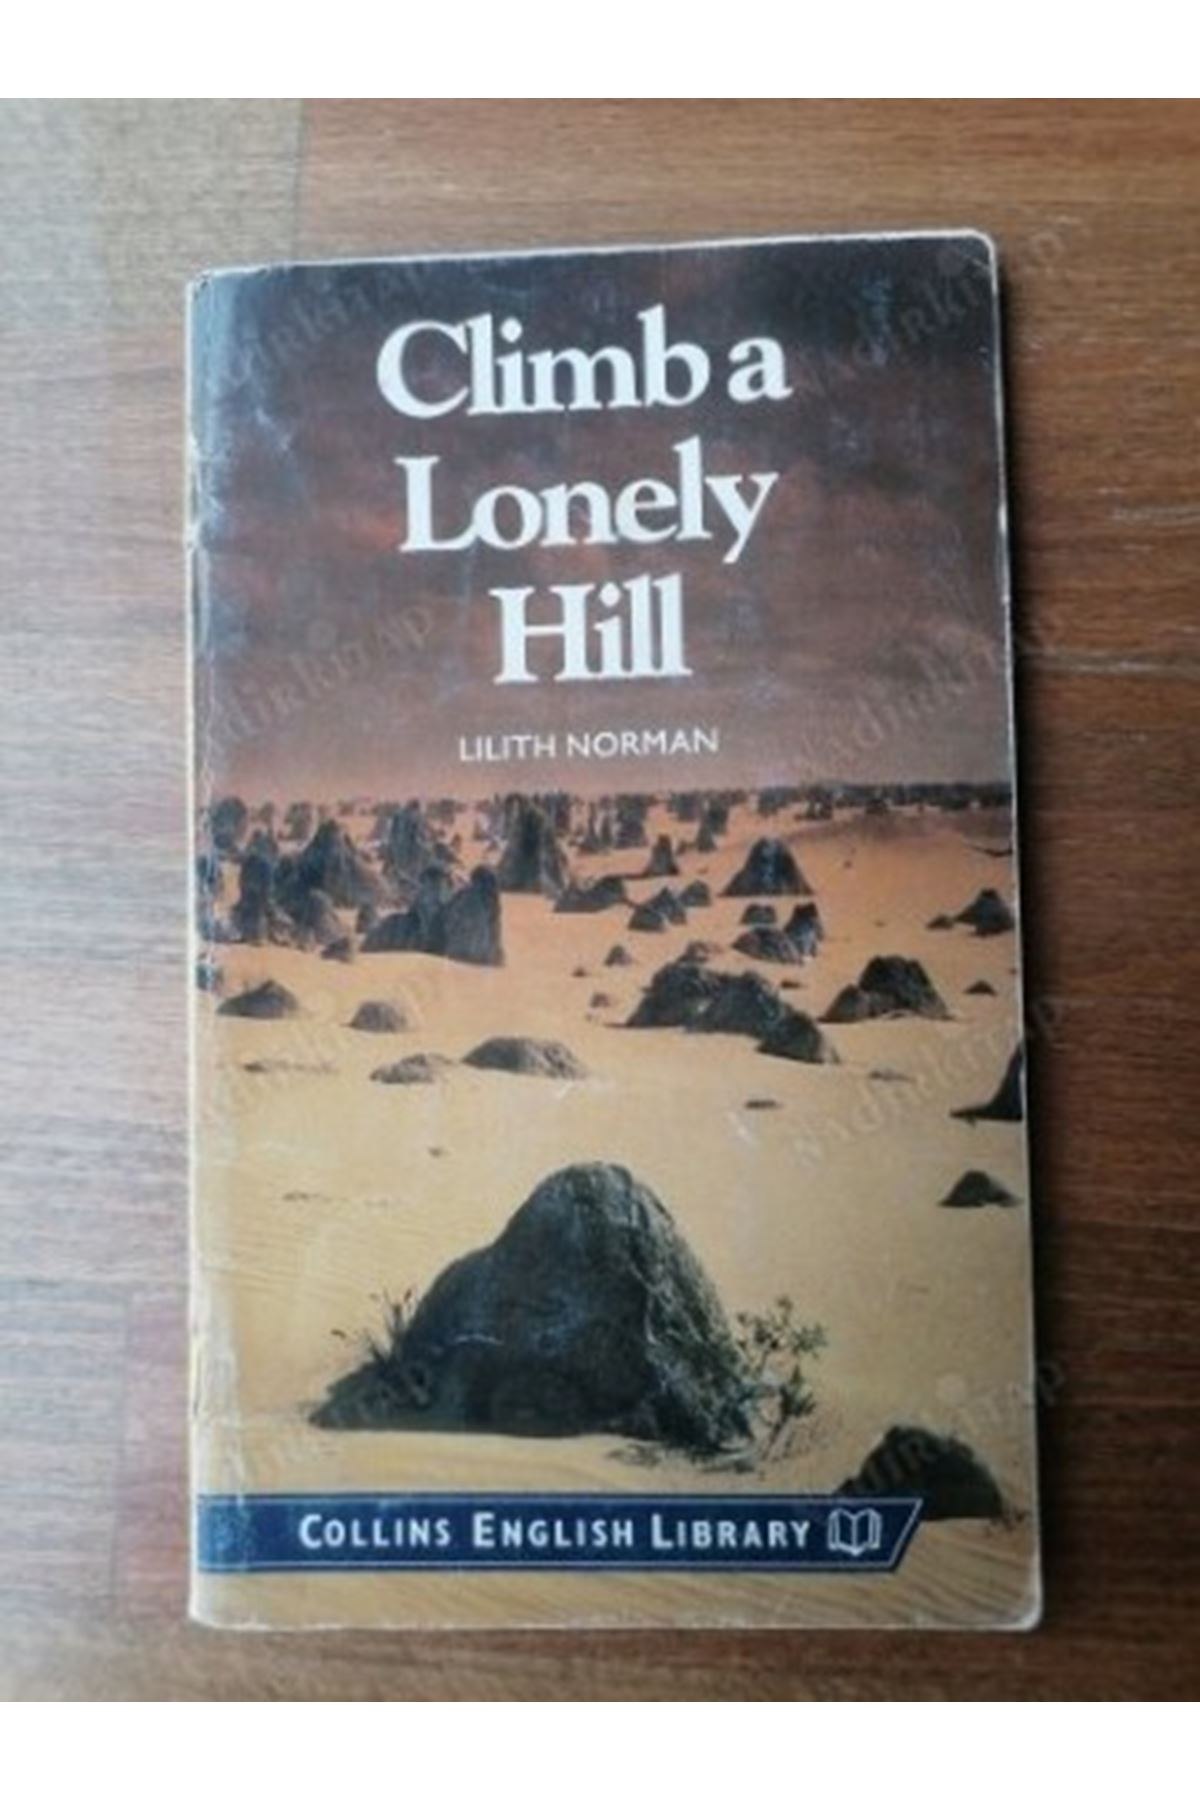 LİLİTH NORMAN - CLİMBA LONELY HİLL